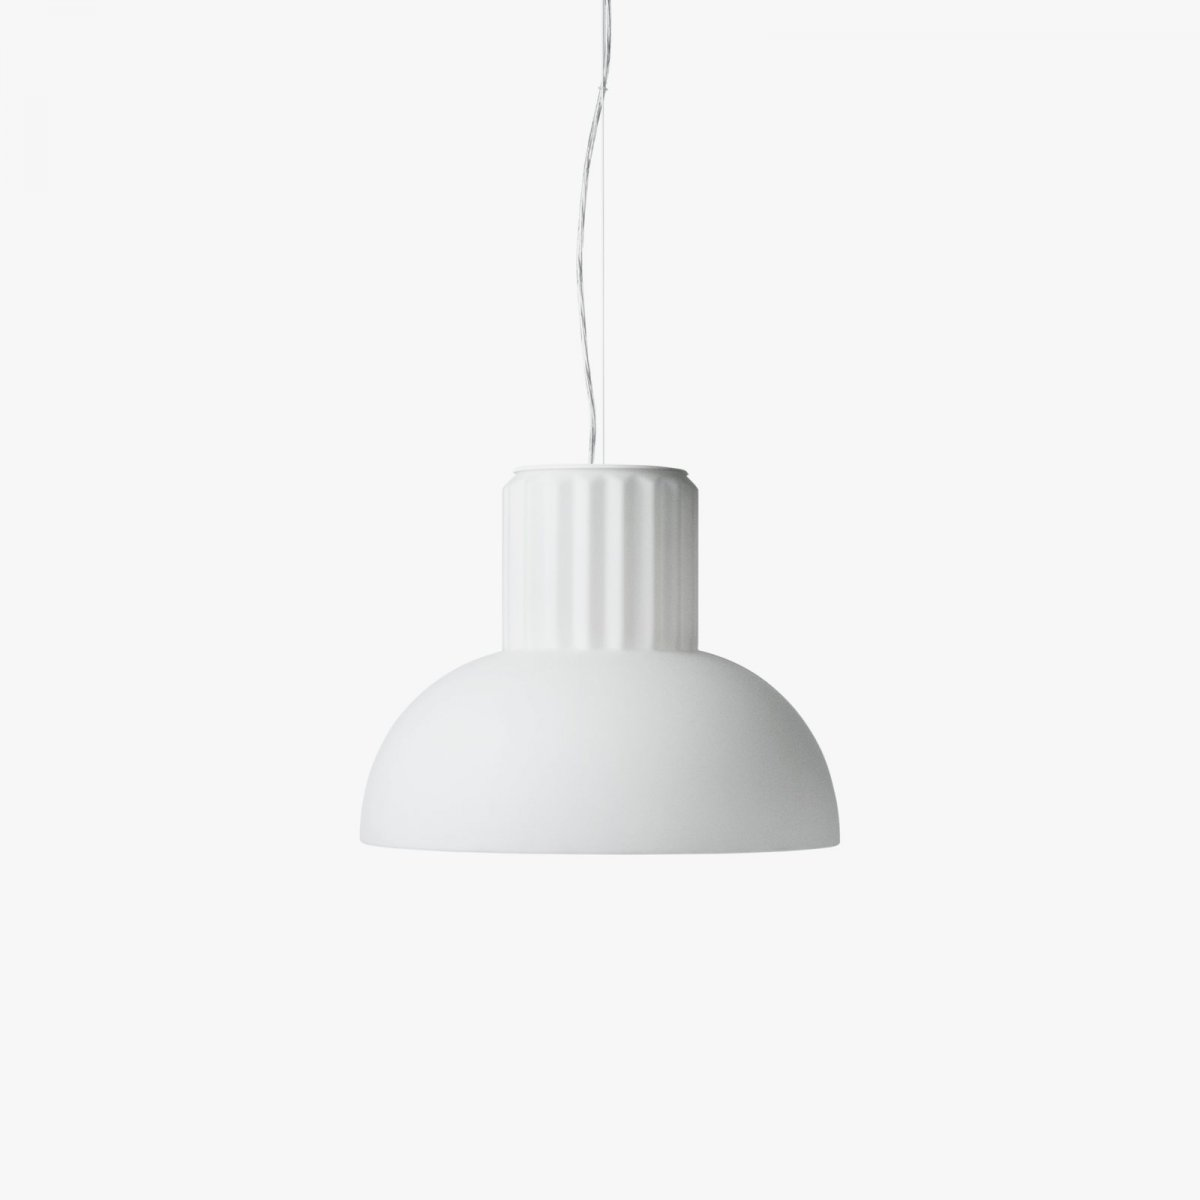 The Standard Pendant lamp.